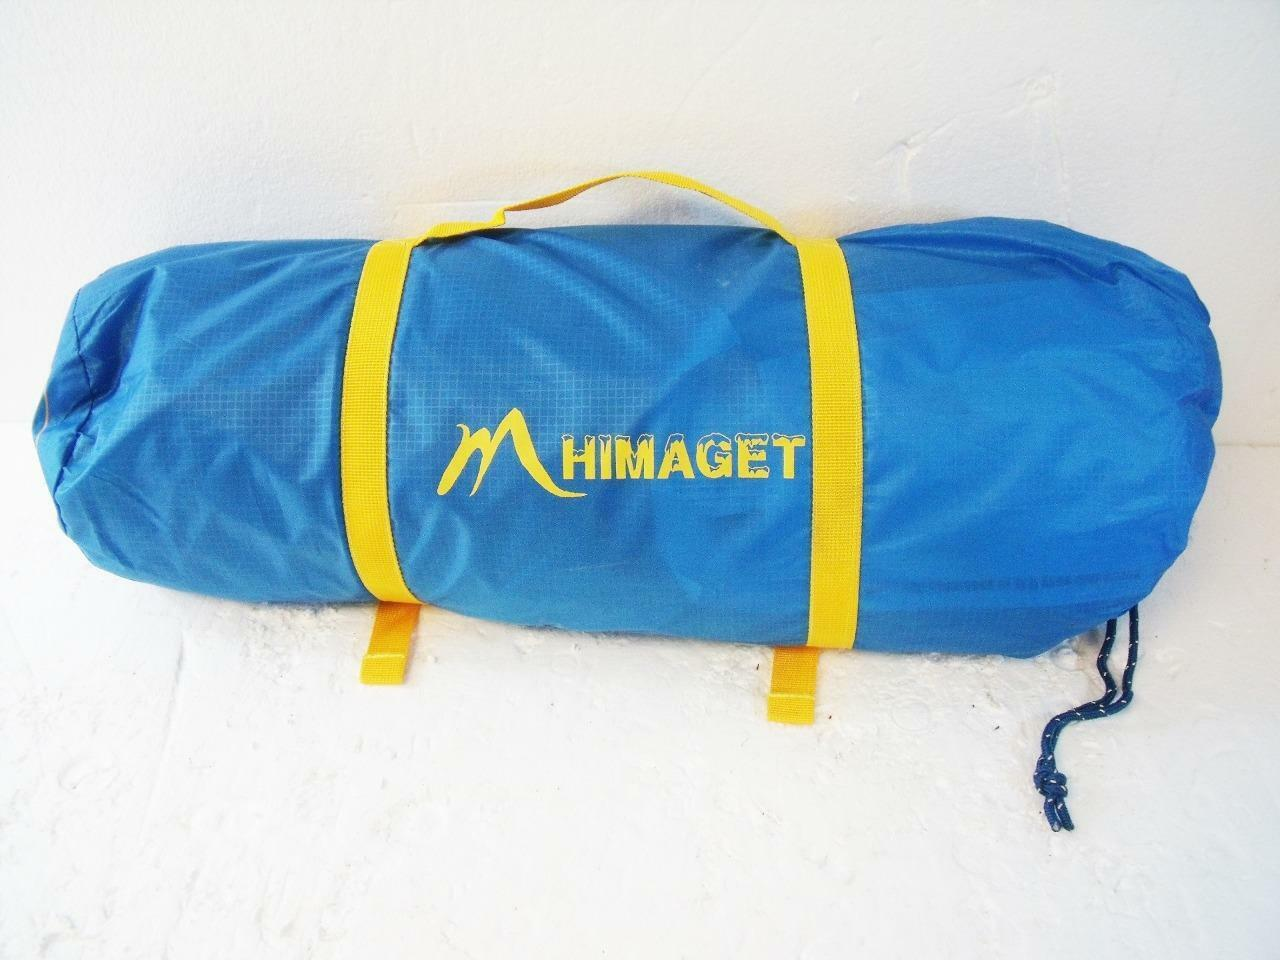 Himaget 2-Person Dome  Tent w  Carry Bag Camping, Hiking Aluminum Pole Frame New  outlet sale